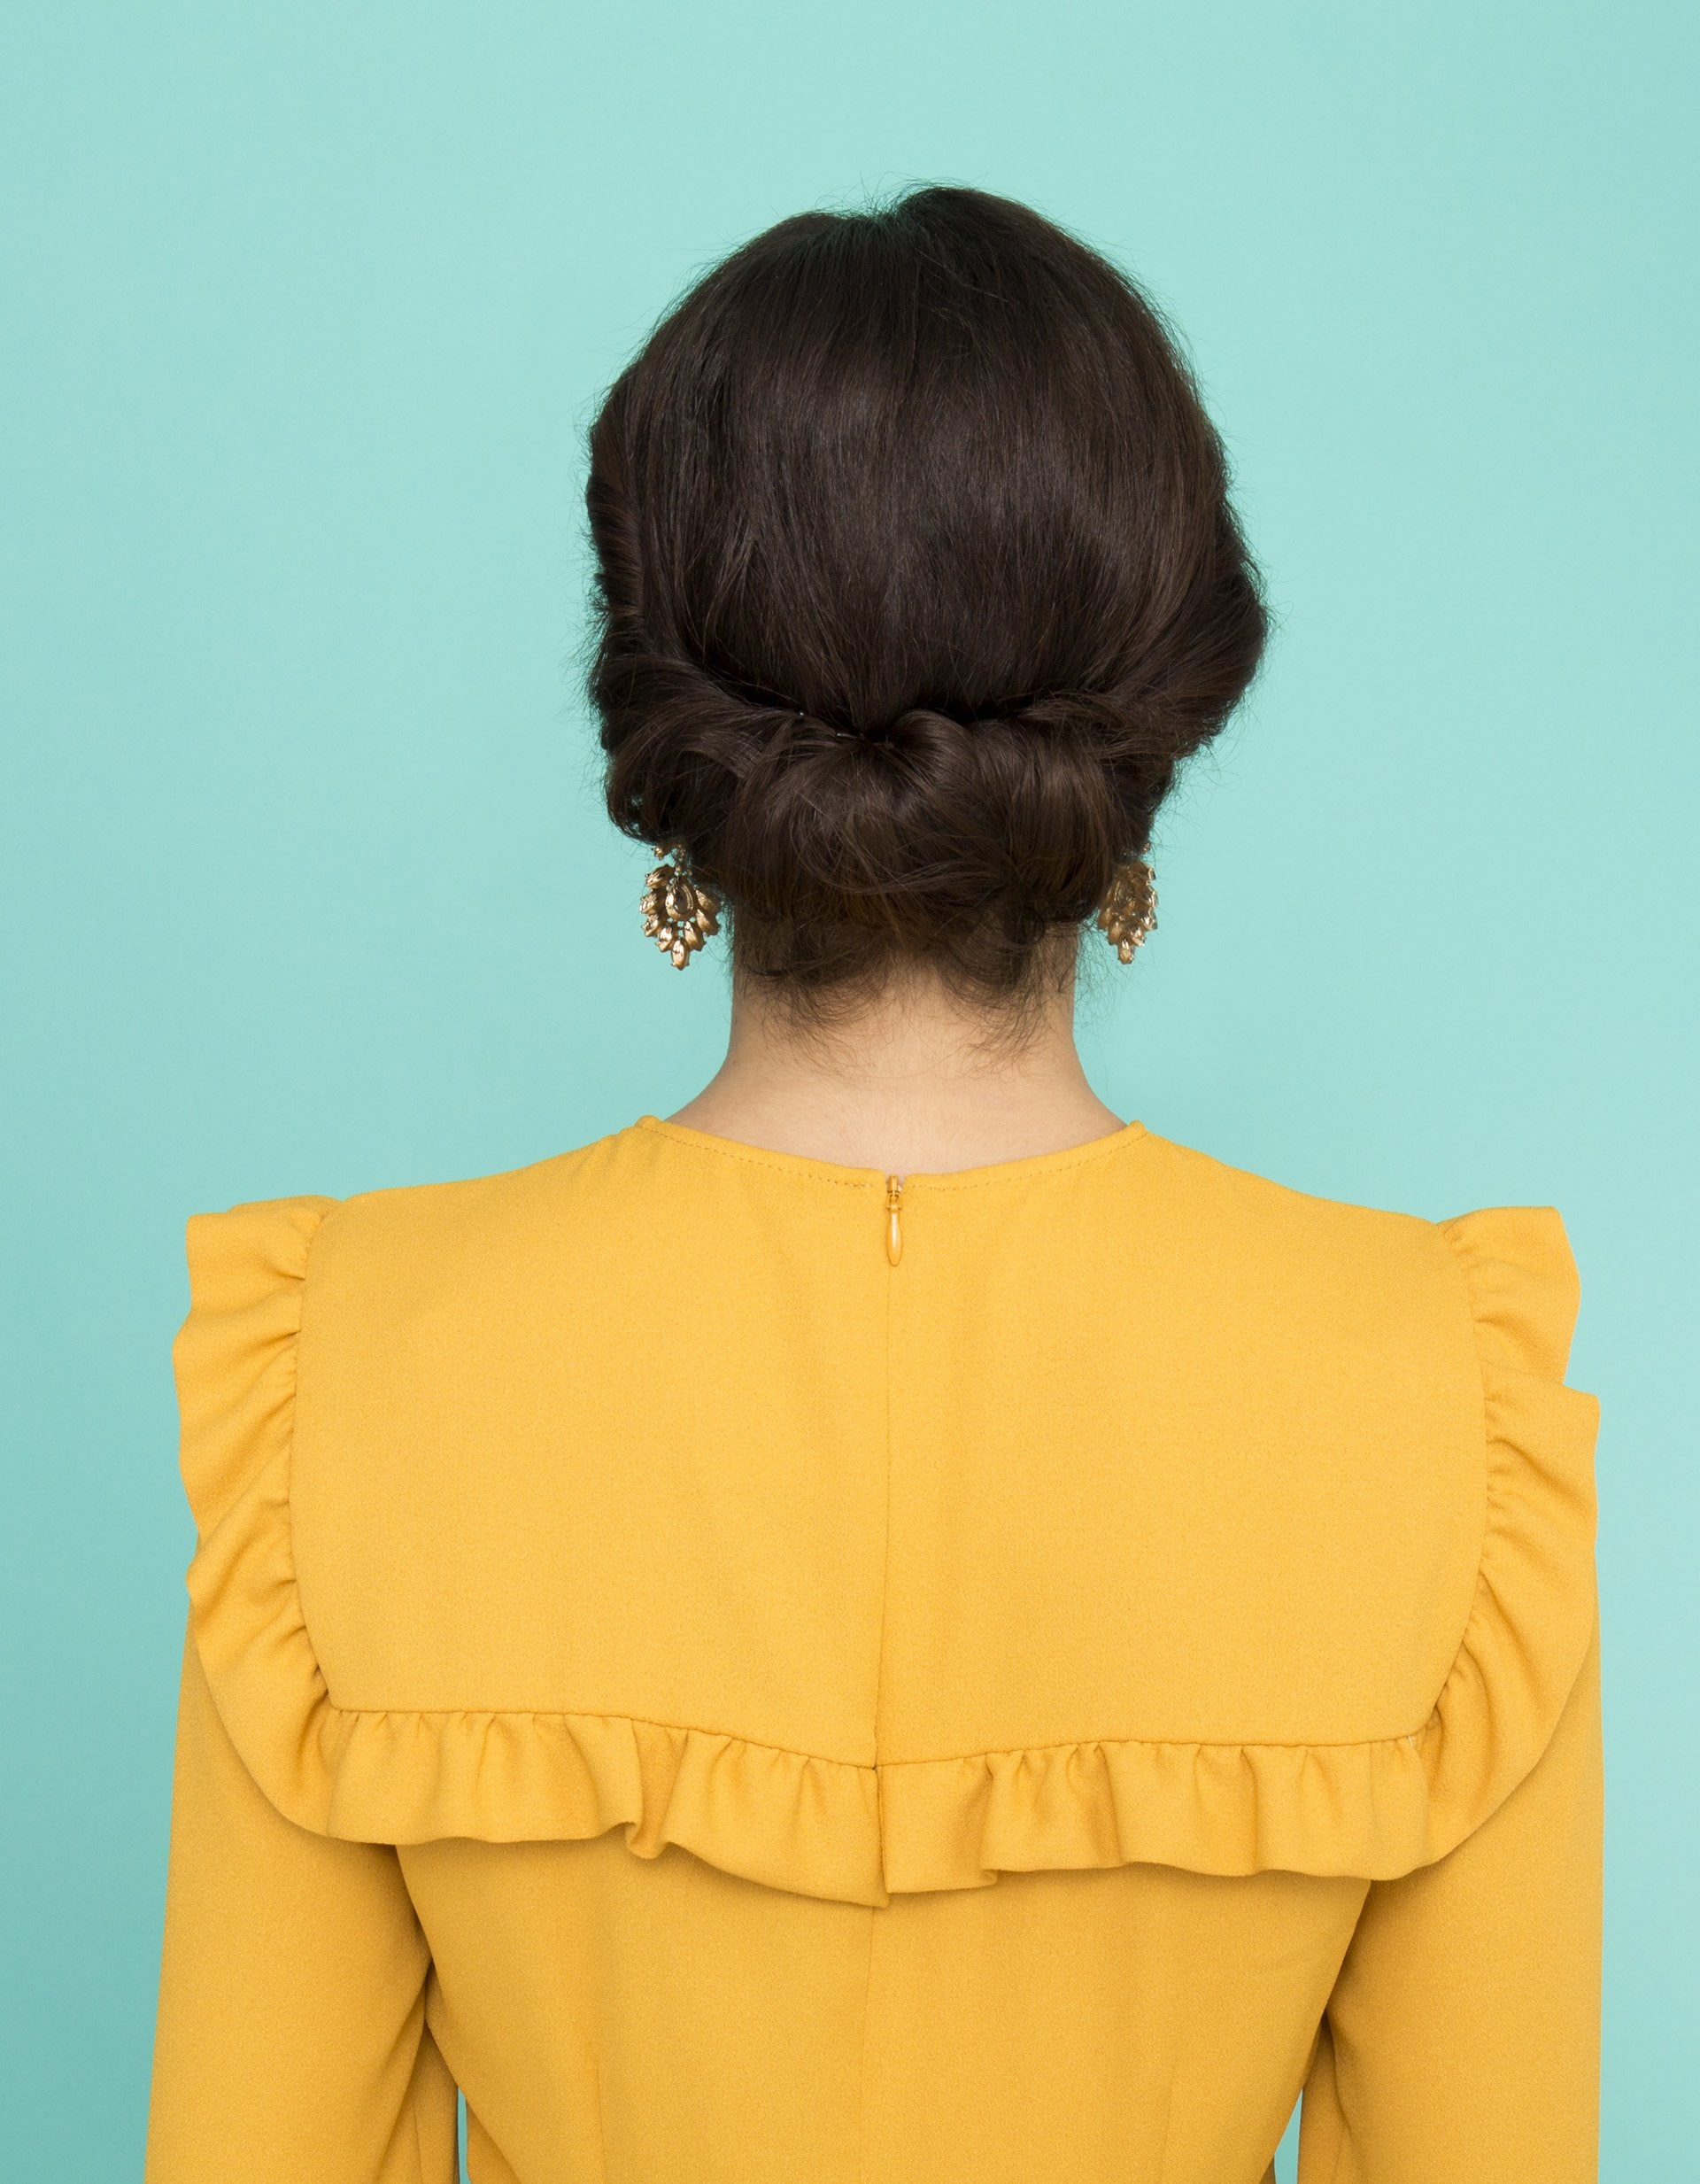 The Croissant Bun Is The Latest French Girl Hair Trend You Should Try - Croissant hairstyle bun